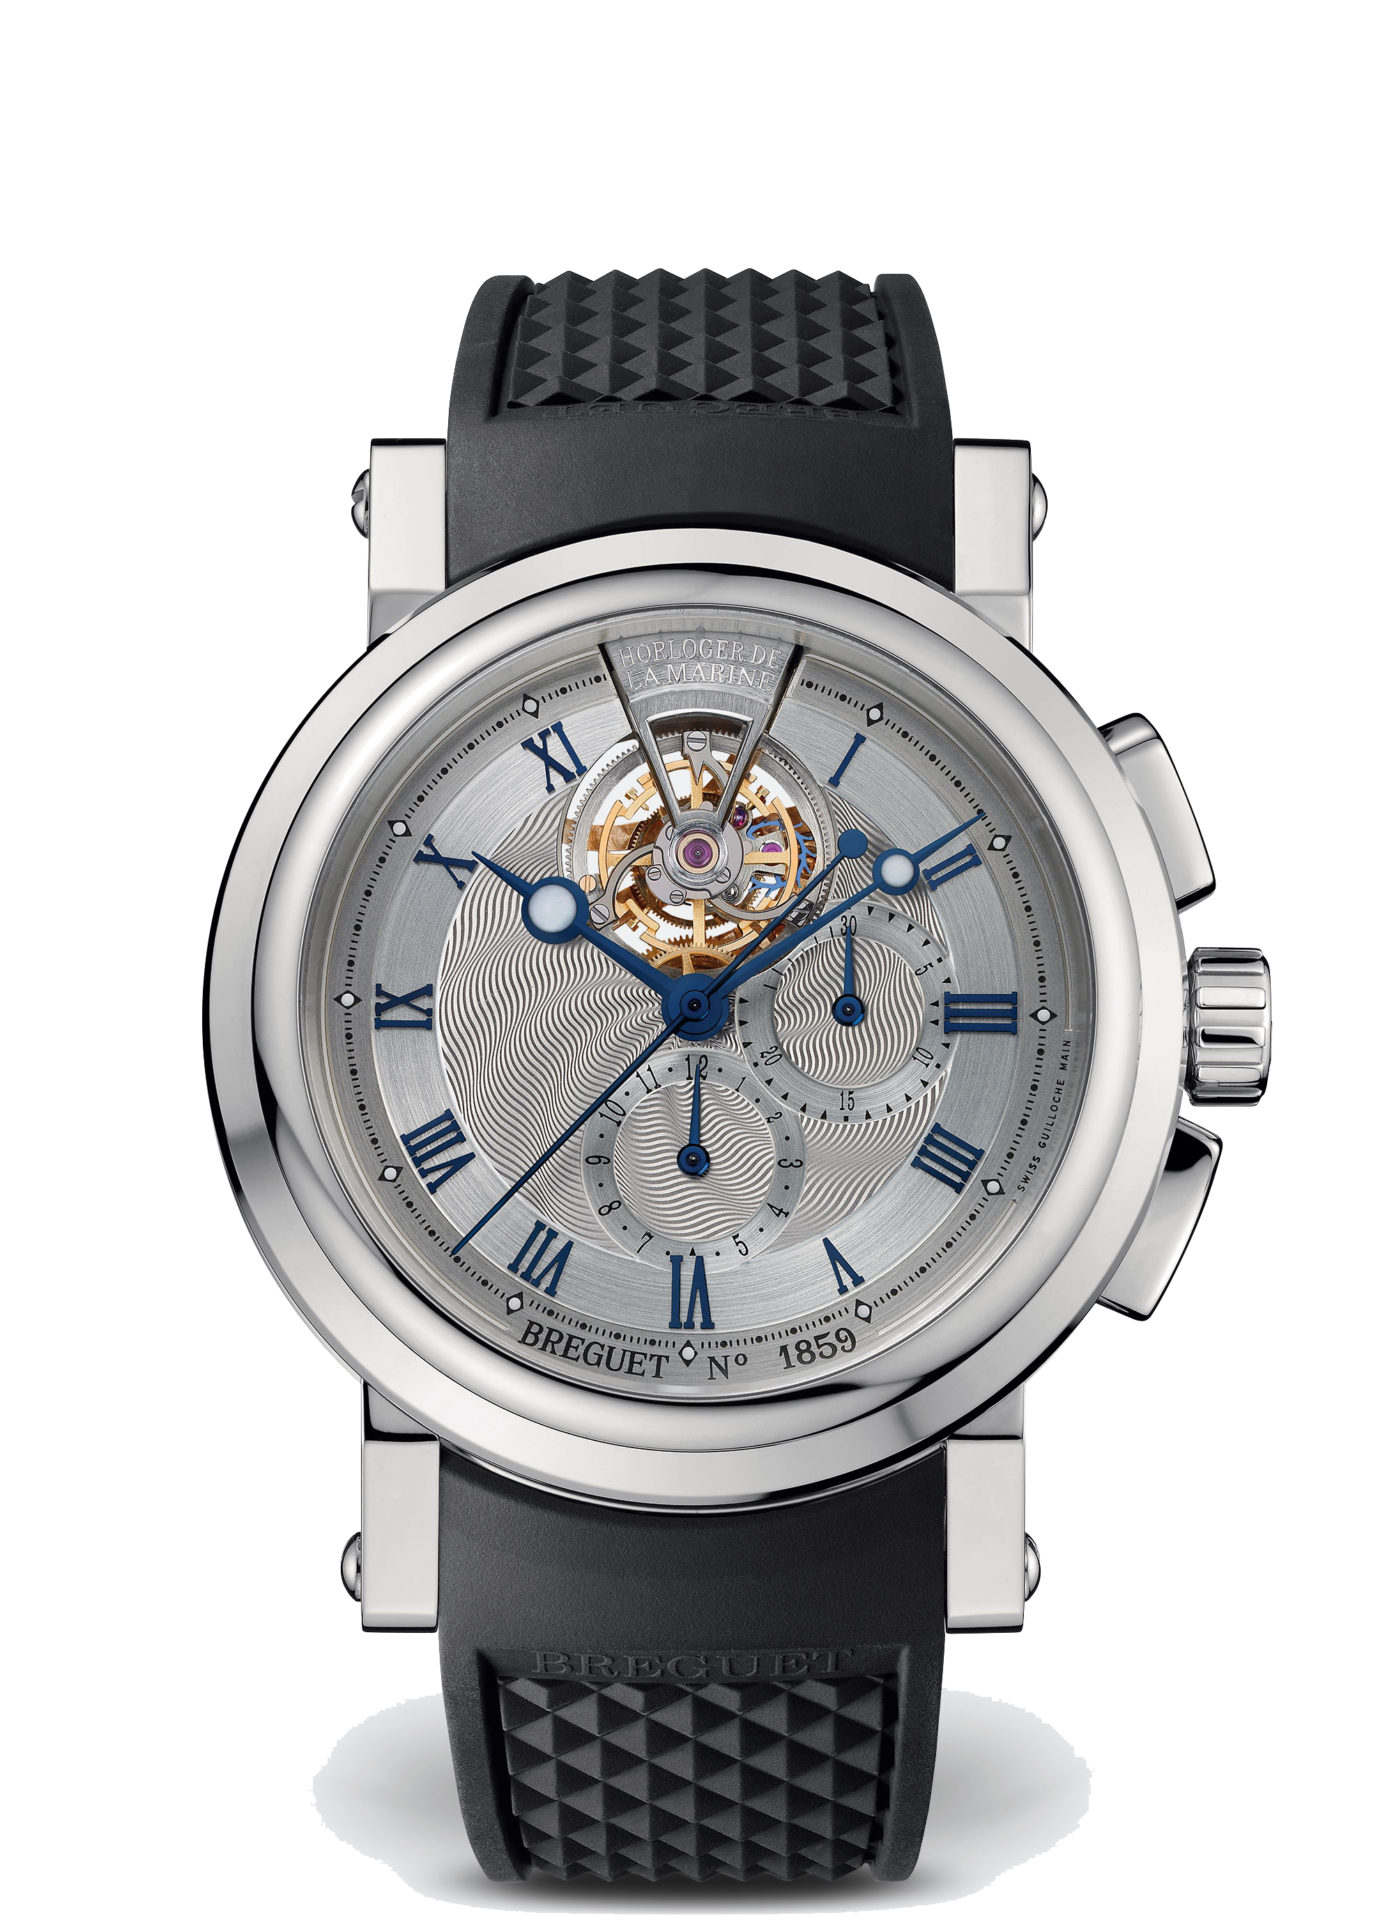 Breguet-La-Marine-5837-Hall-of-Time-5837pt-u2-5zu